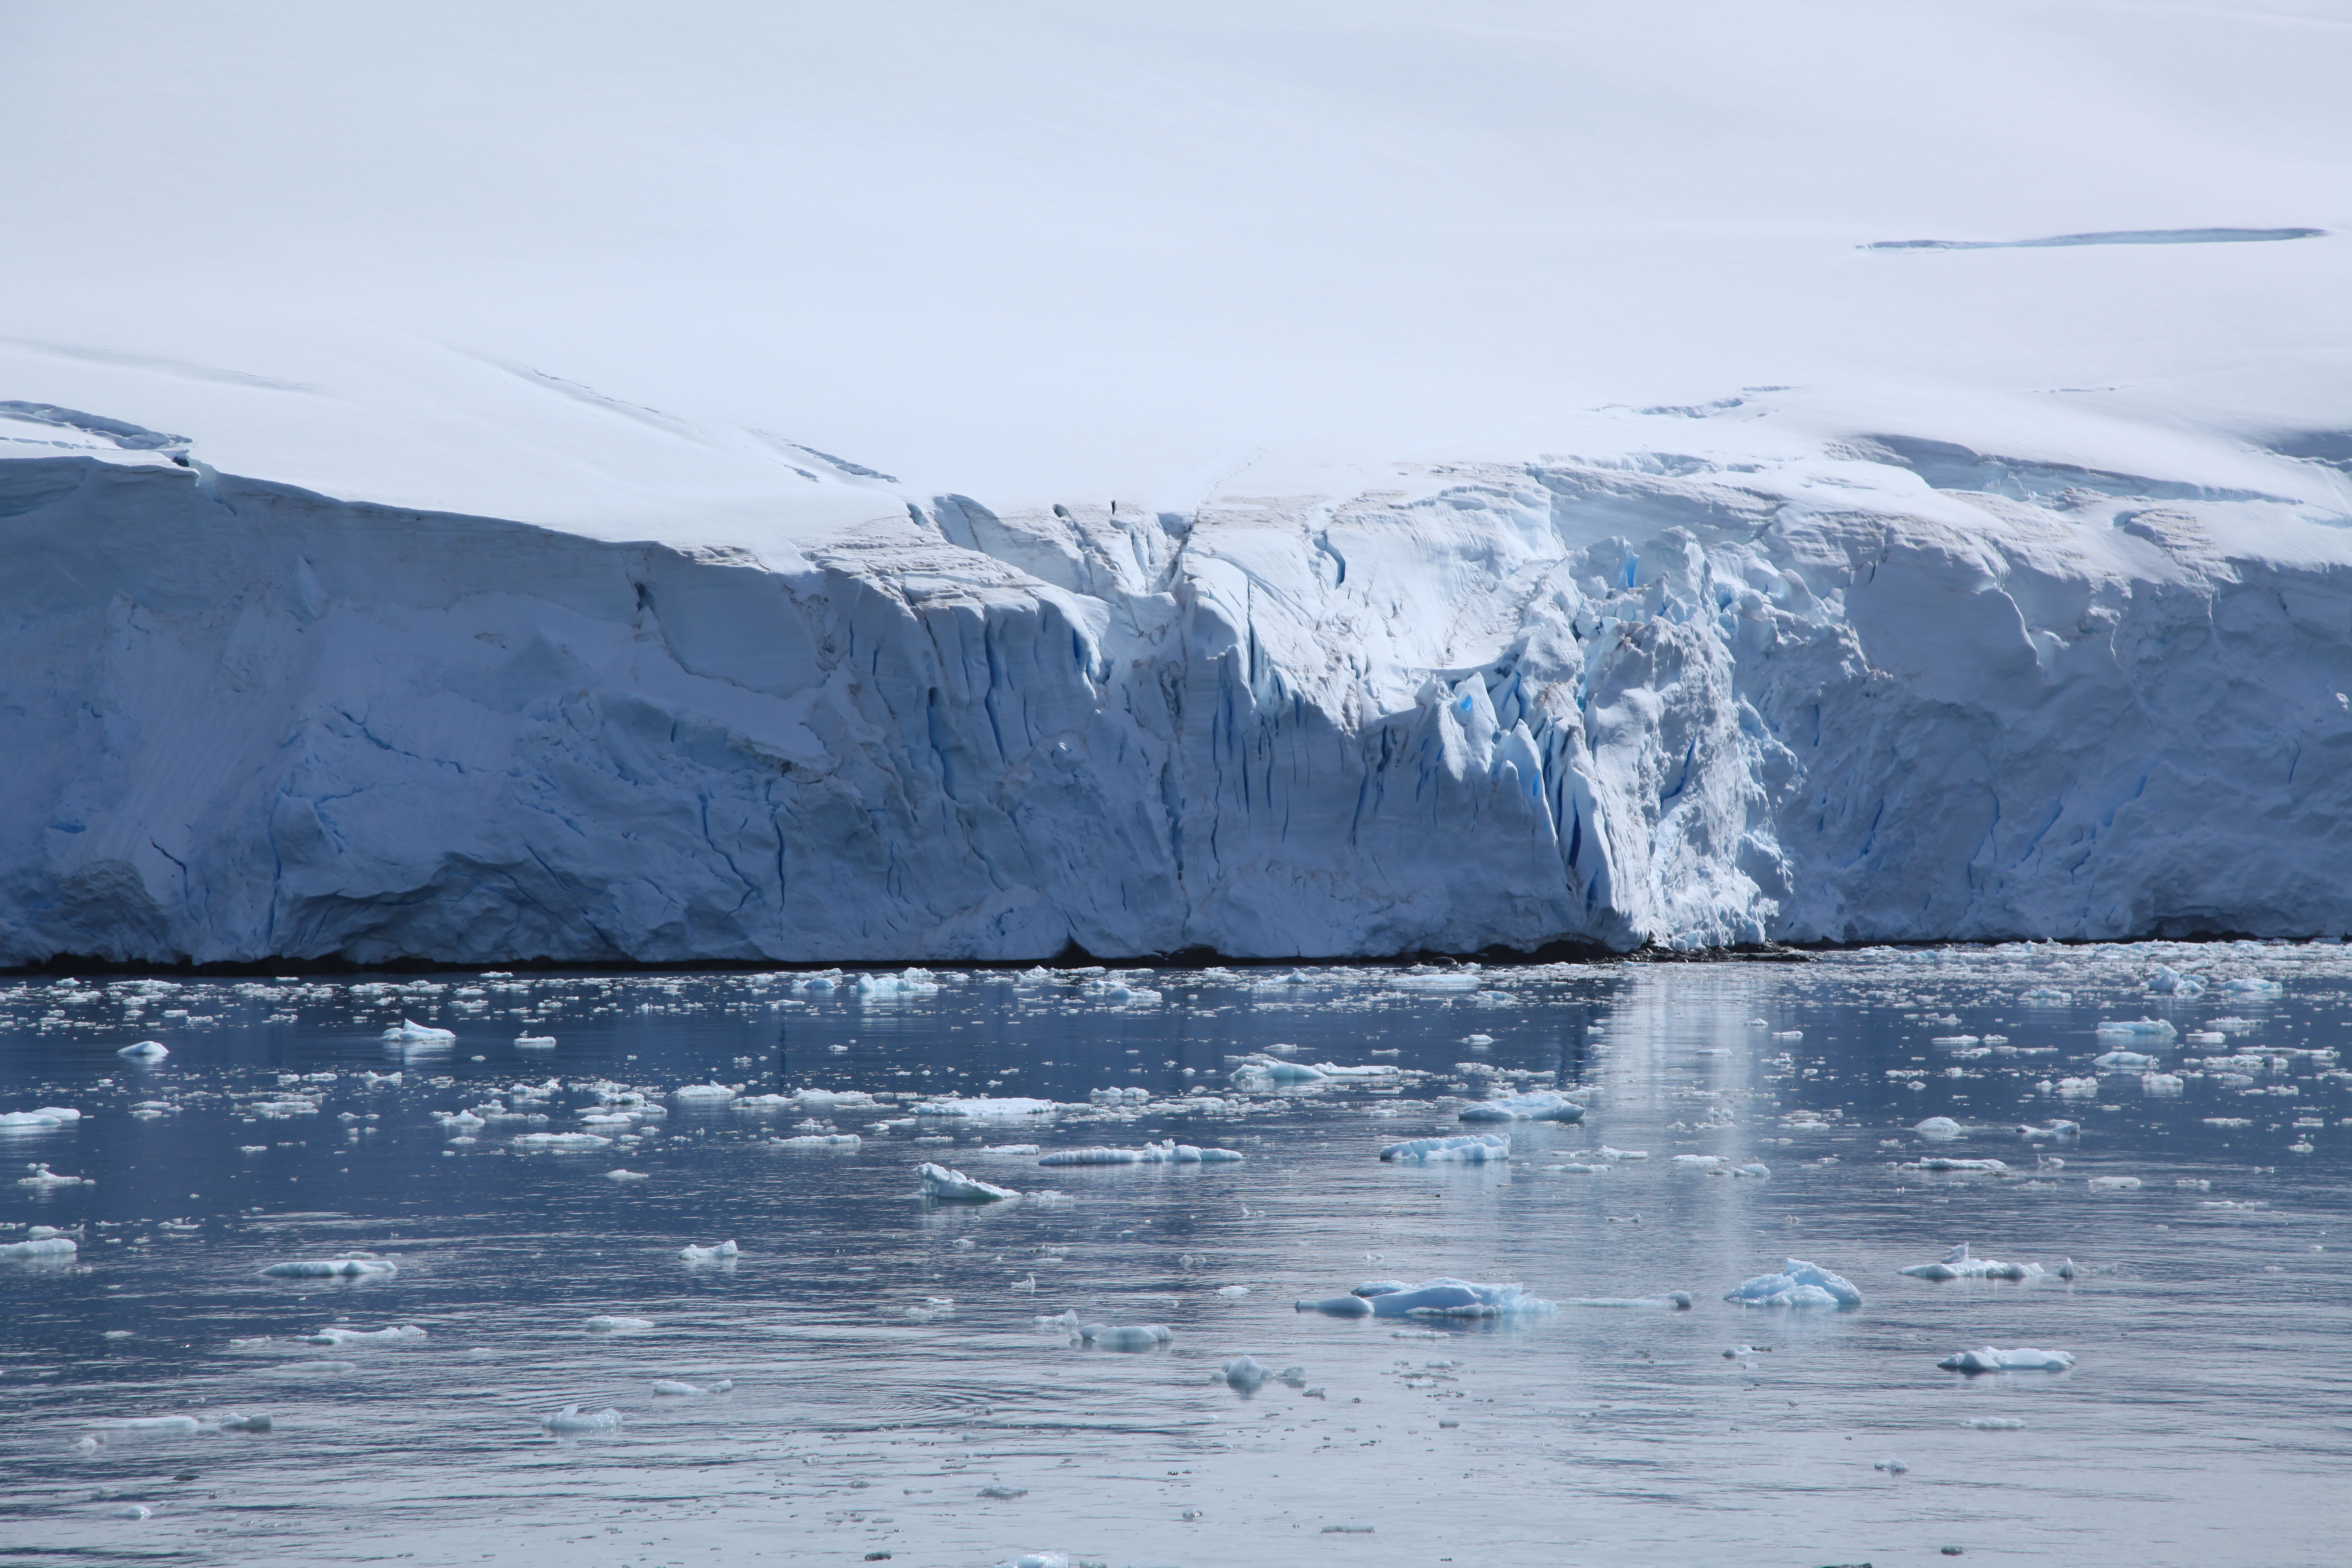 Ice Fall Wallpaper File Glacier In Penola Strait Antarctica 6060845182 Jpg